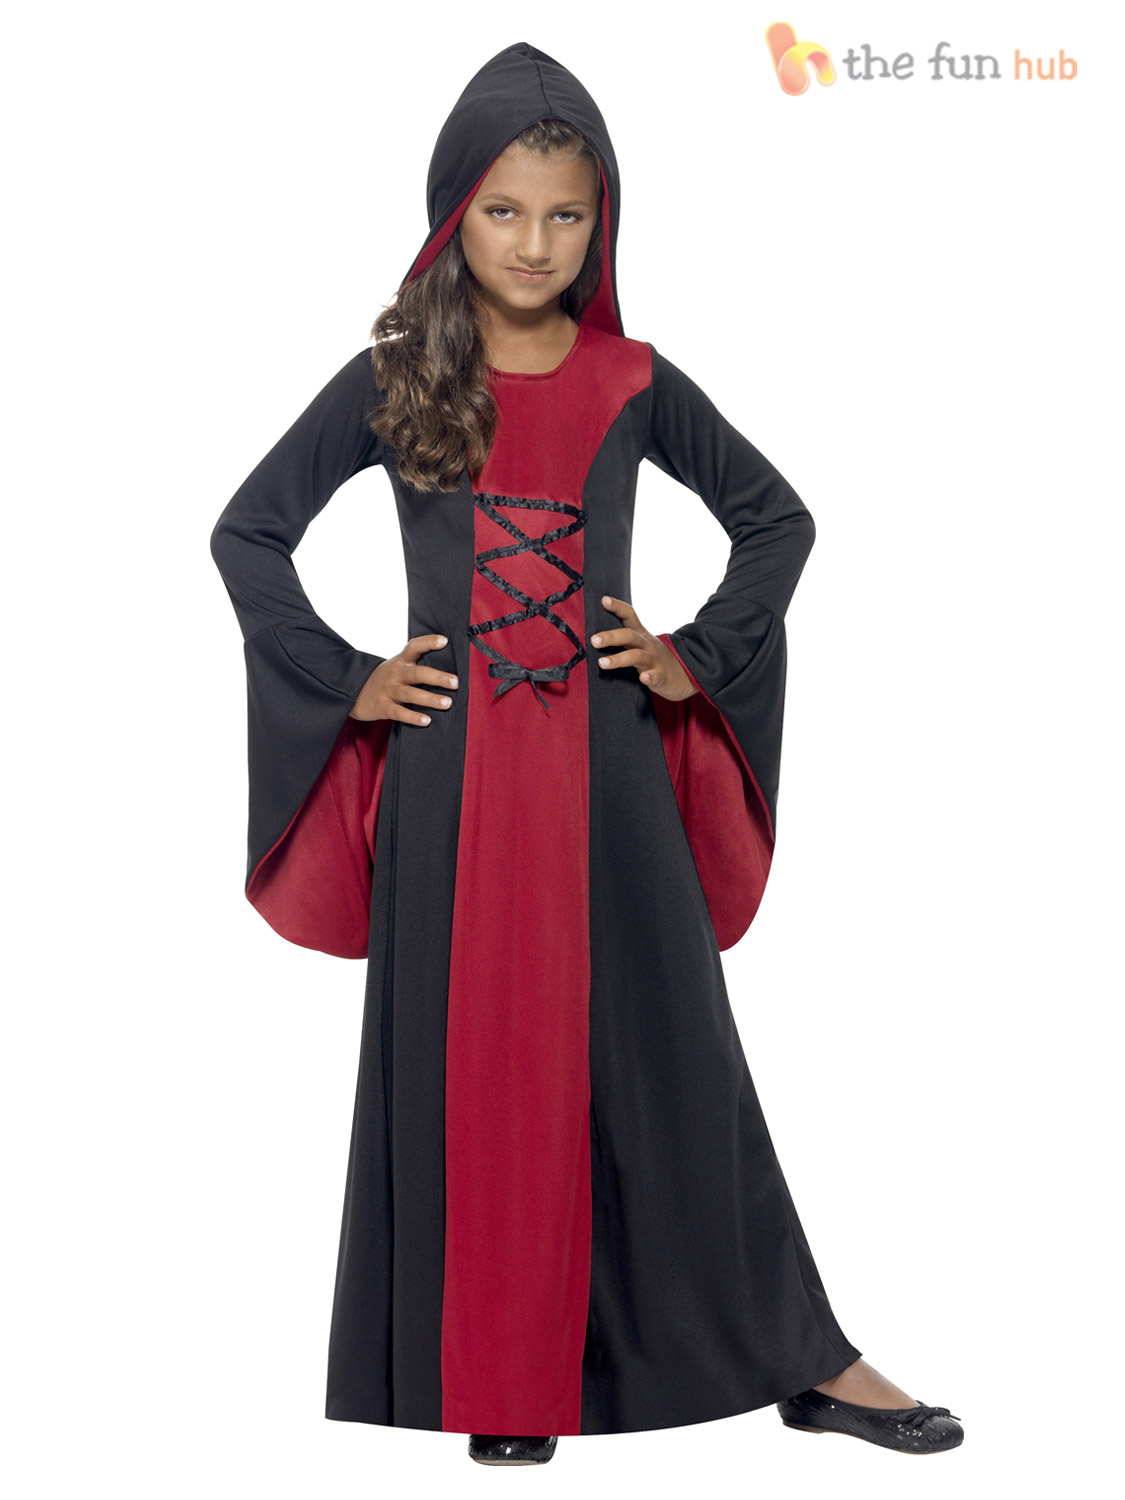 girls hooded vampire costume halloween fancy dress party kids